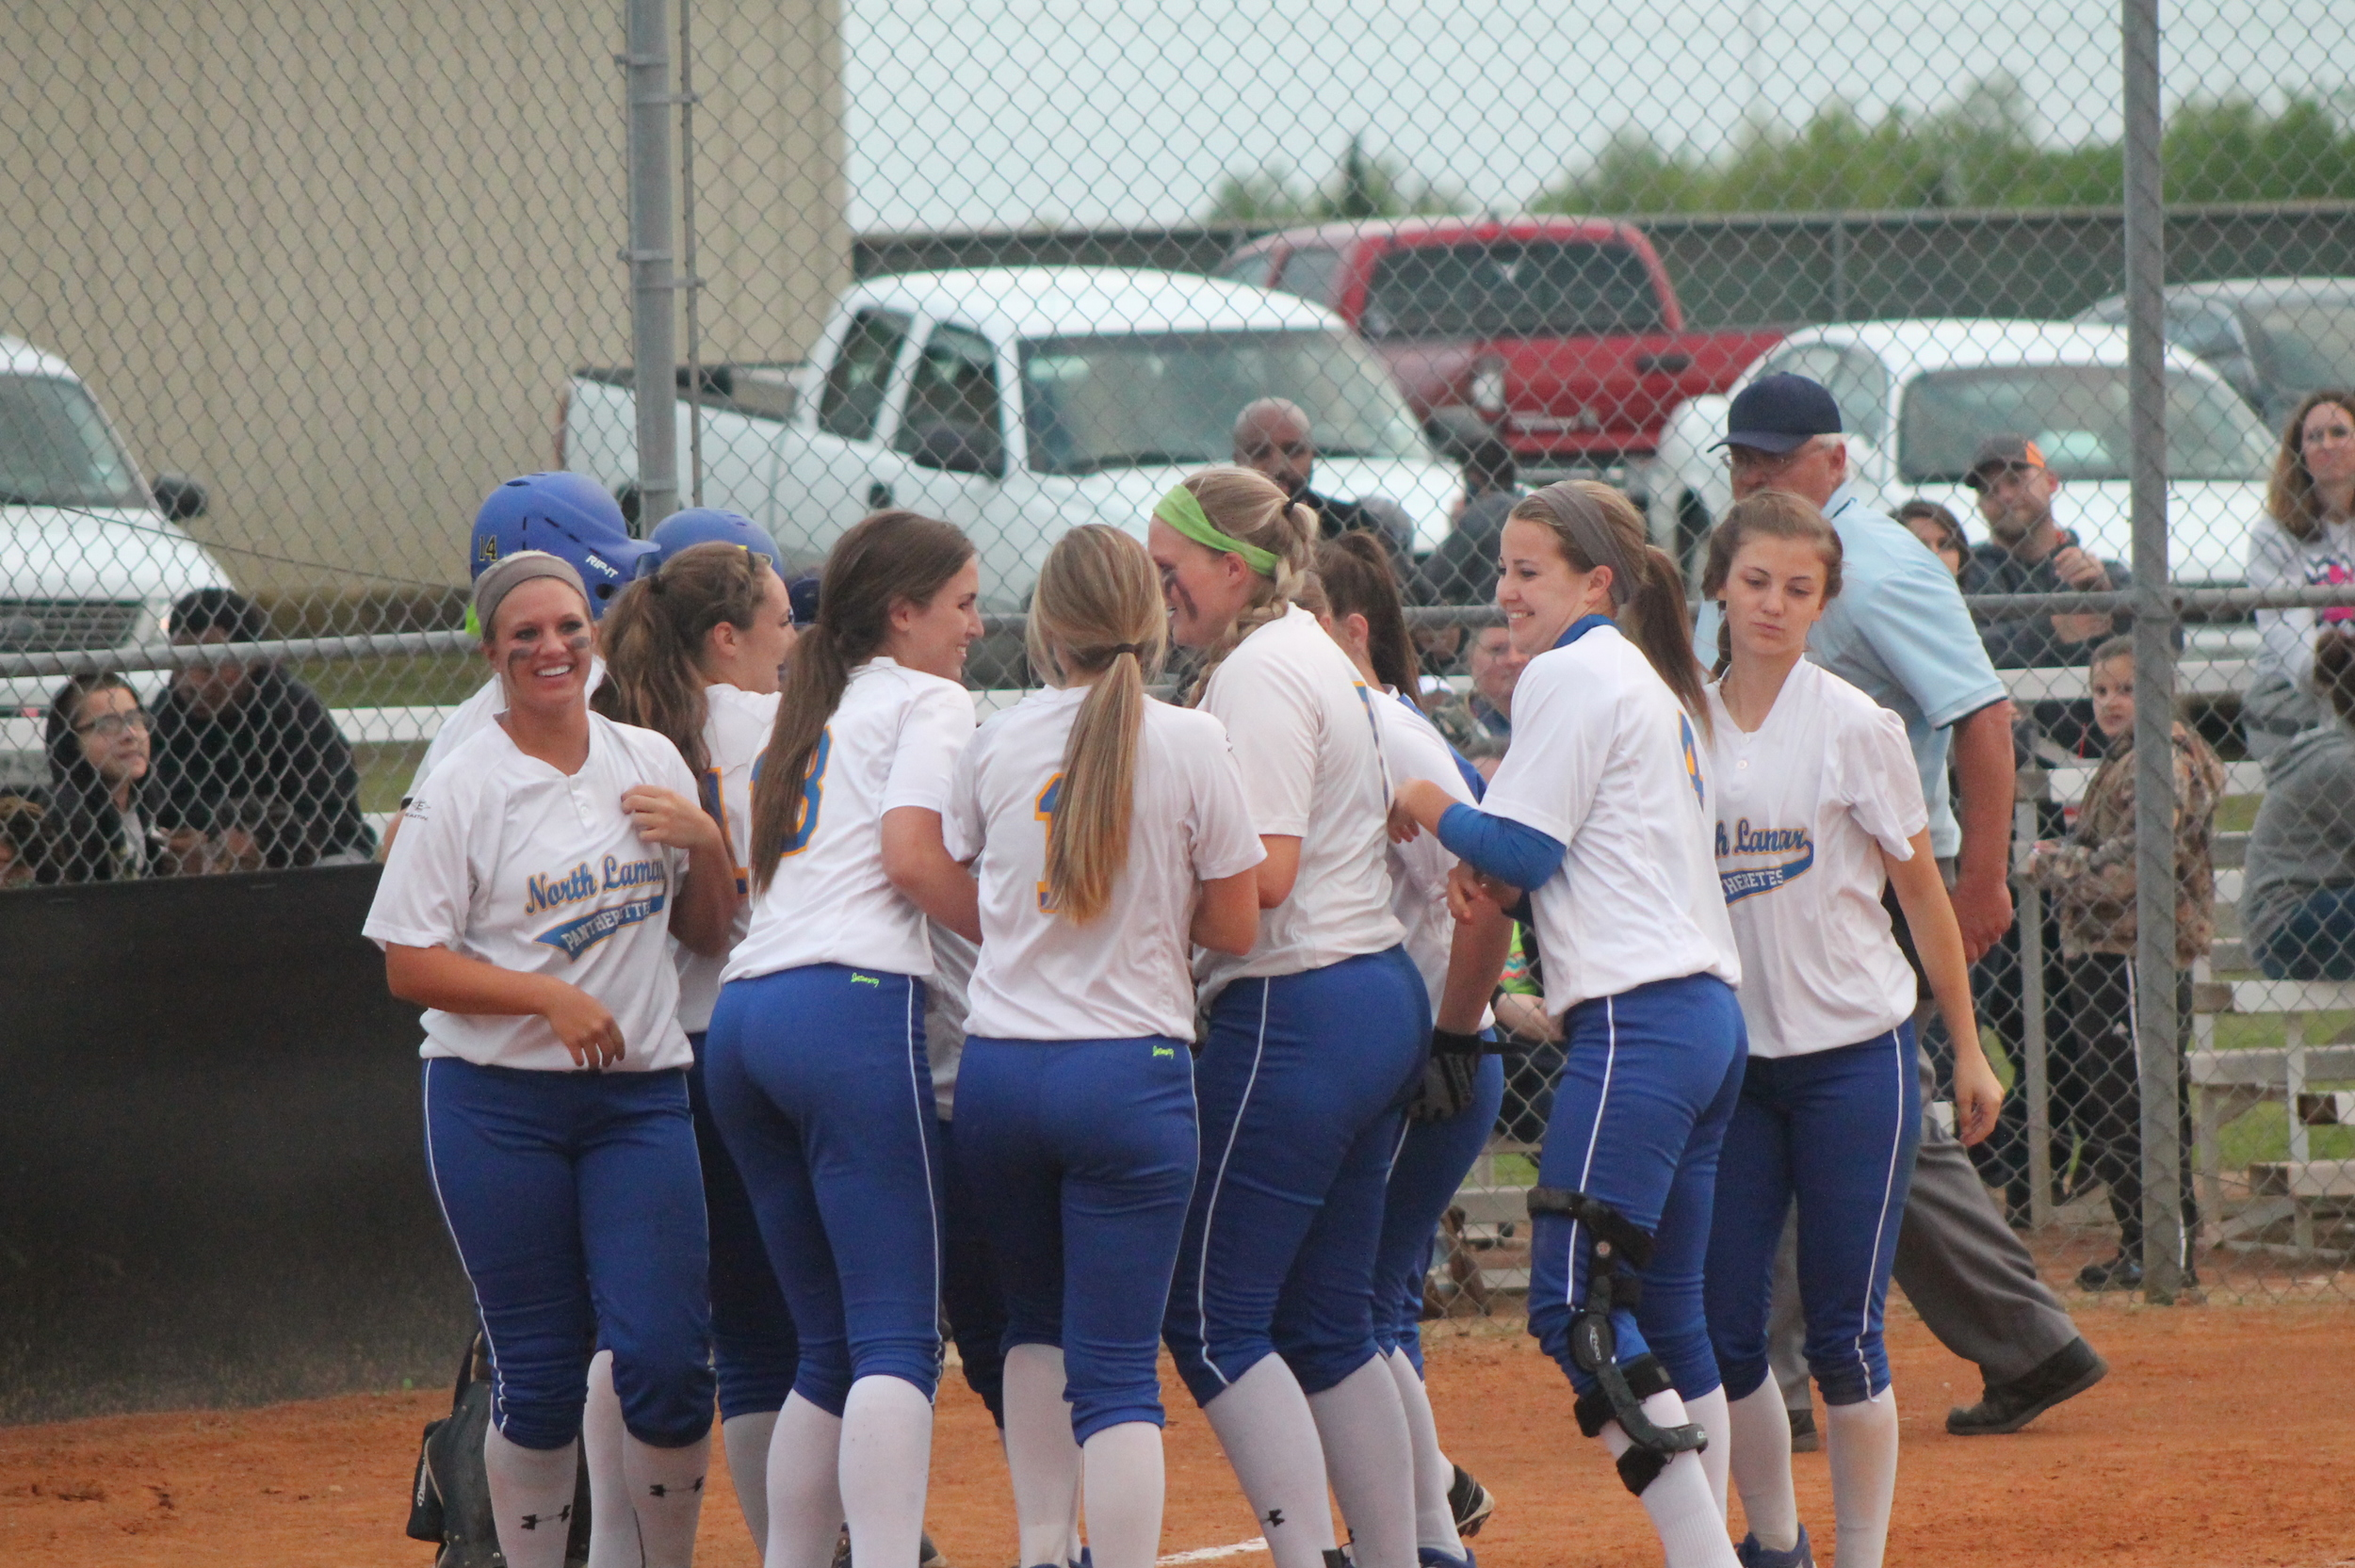 Sarah Penrose being mobbed by her teammates after hitting a two-run homer against Paris High on Tuesday night.